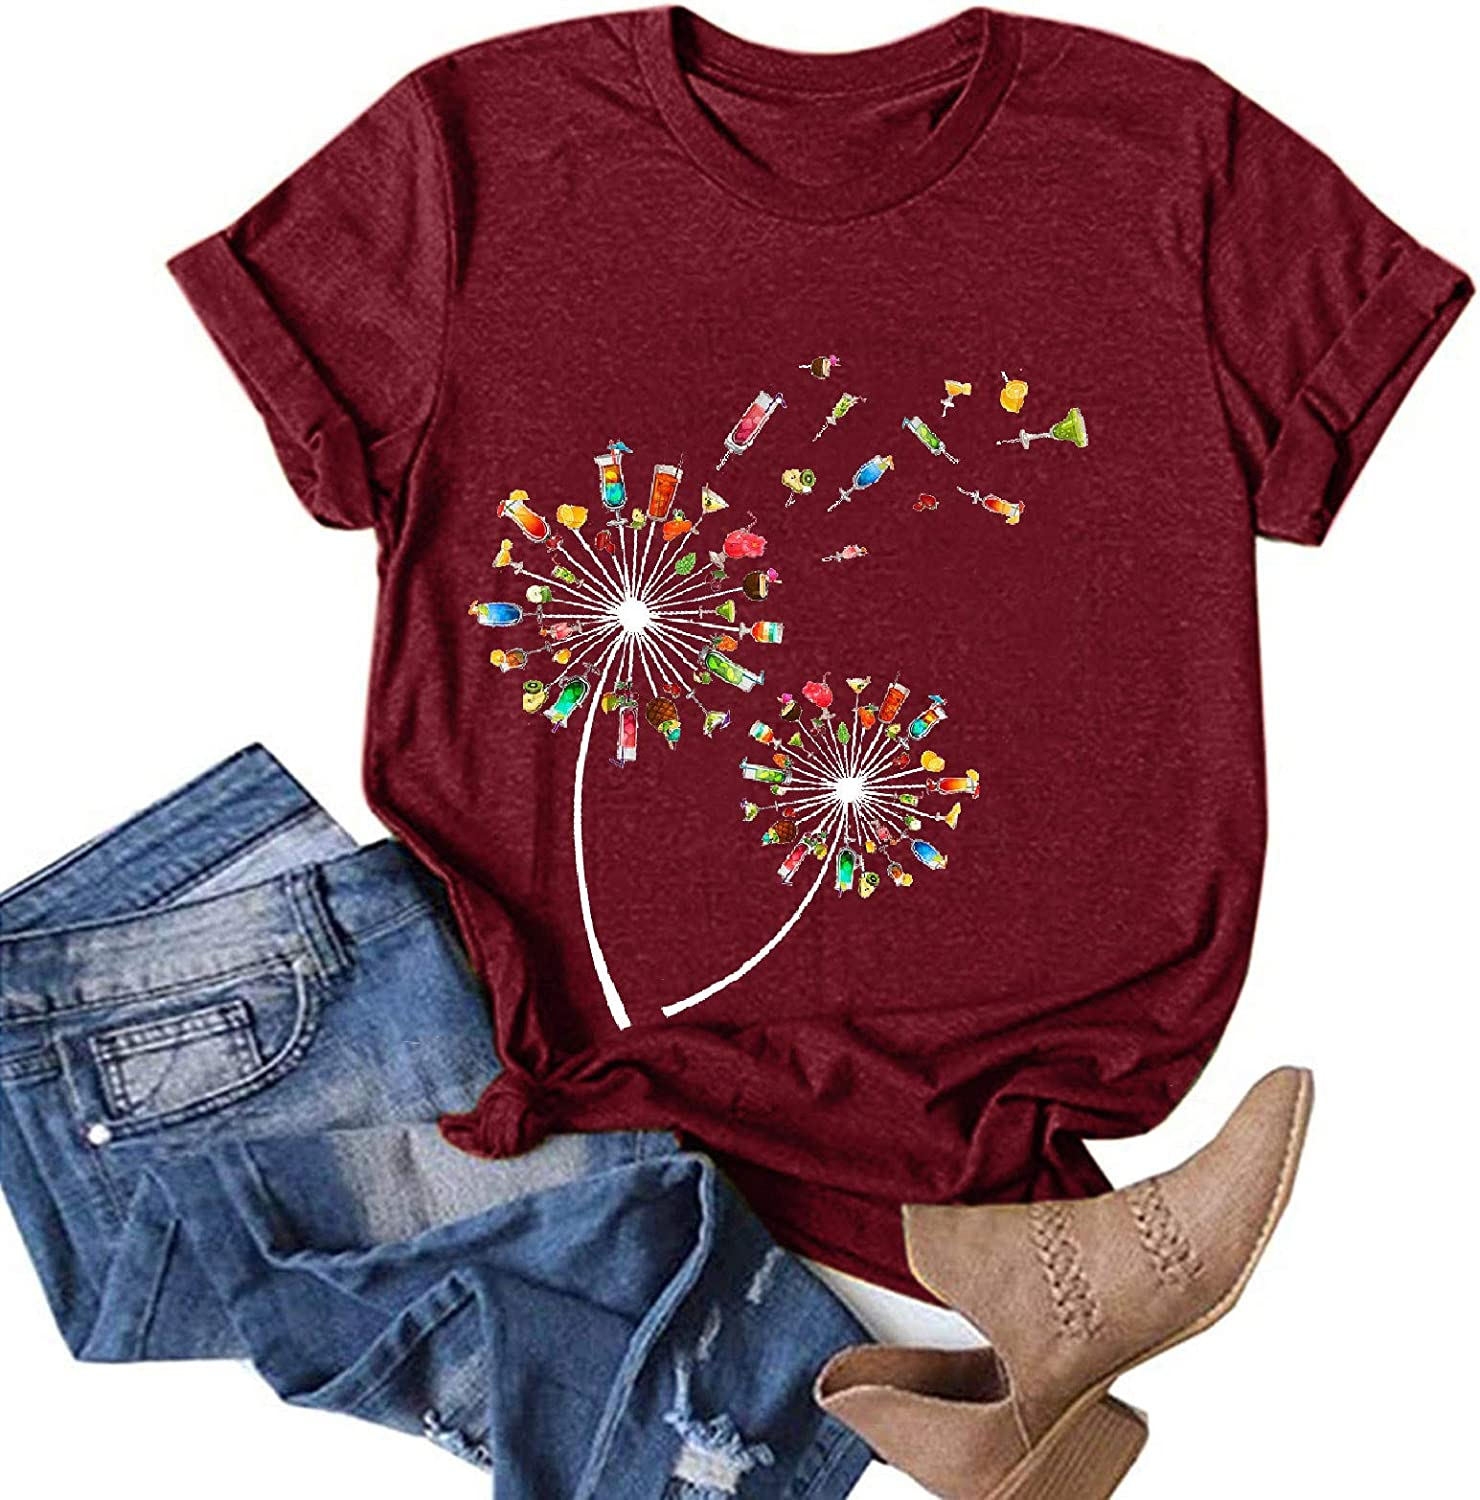 Aukbays Womens Plus Size Tops Dandelion Graphic Vintage Tees Shirts Round Neck Short Sleeve Casual T-Shirt Blouses Tunic